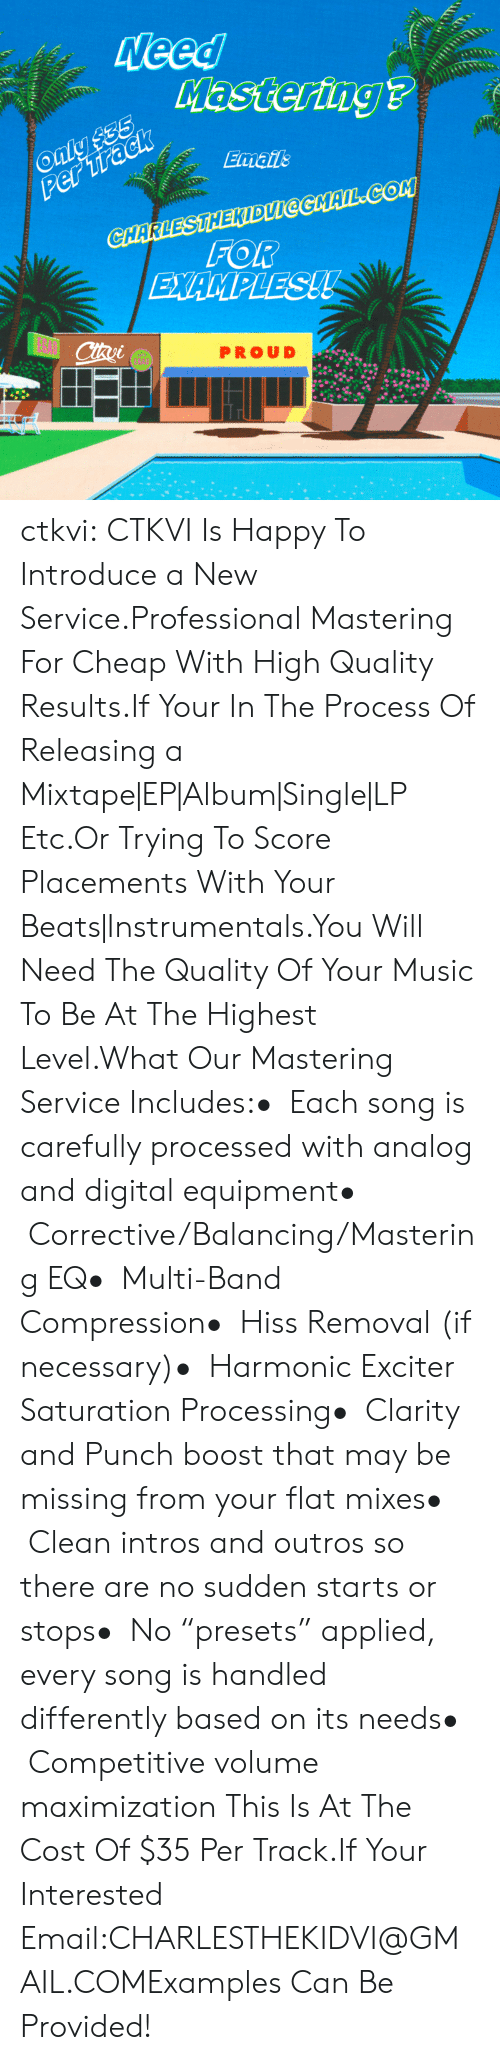 """A Mixtape: PROUD ctkvi:  CTKVI Is Happy To Introduce a New Service.Professional Mastering For Cheap With High Quality Results.If Your In The Process Of Releasing a Mixtape EP Album Single LP Etc.Or Trying To Score Placements With Your Beats Instrumentals.You Will Need The Quality Of Your Music To Be At The Highest Level.What Our Mastering Service Includes:• Each song is carefully processed with analog and digital equipment• Corrective/Balancing/Mastering EQ• Multi-Band Compression• Hiss Removal (if necessary)• Harmonic Exciter  Saturation Processing• Clarity and Punch boost that may be missing from your flat mixes• Clean intros and outros so there are no sudden starts or stops• No """"presets"""" applied, every song is handled differently based on its needs• Competitive volume maximization This Is At The Cost Of $35 Per Track.If Your Interested Email:CHARLESTHEKIDVI@GMAIL.COMExamples Can Be Provided!"""